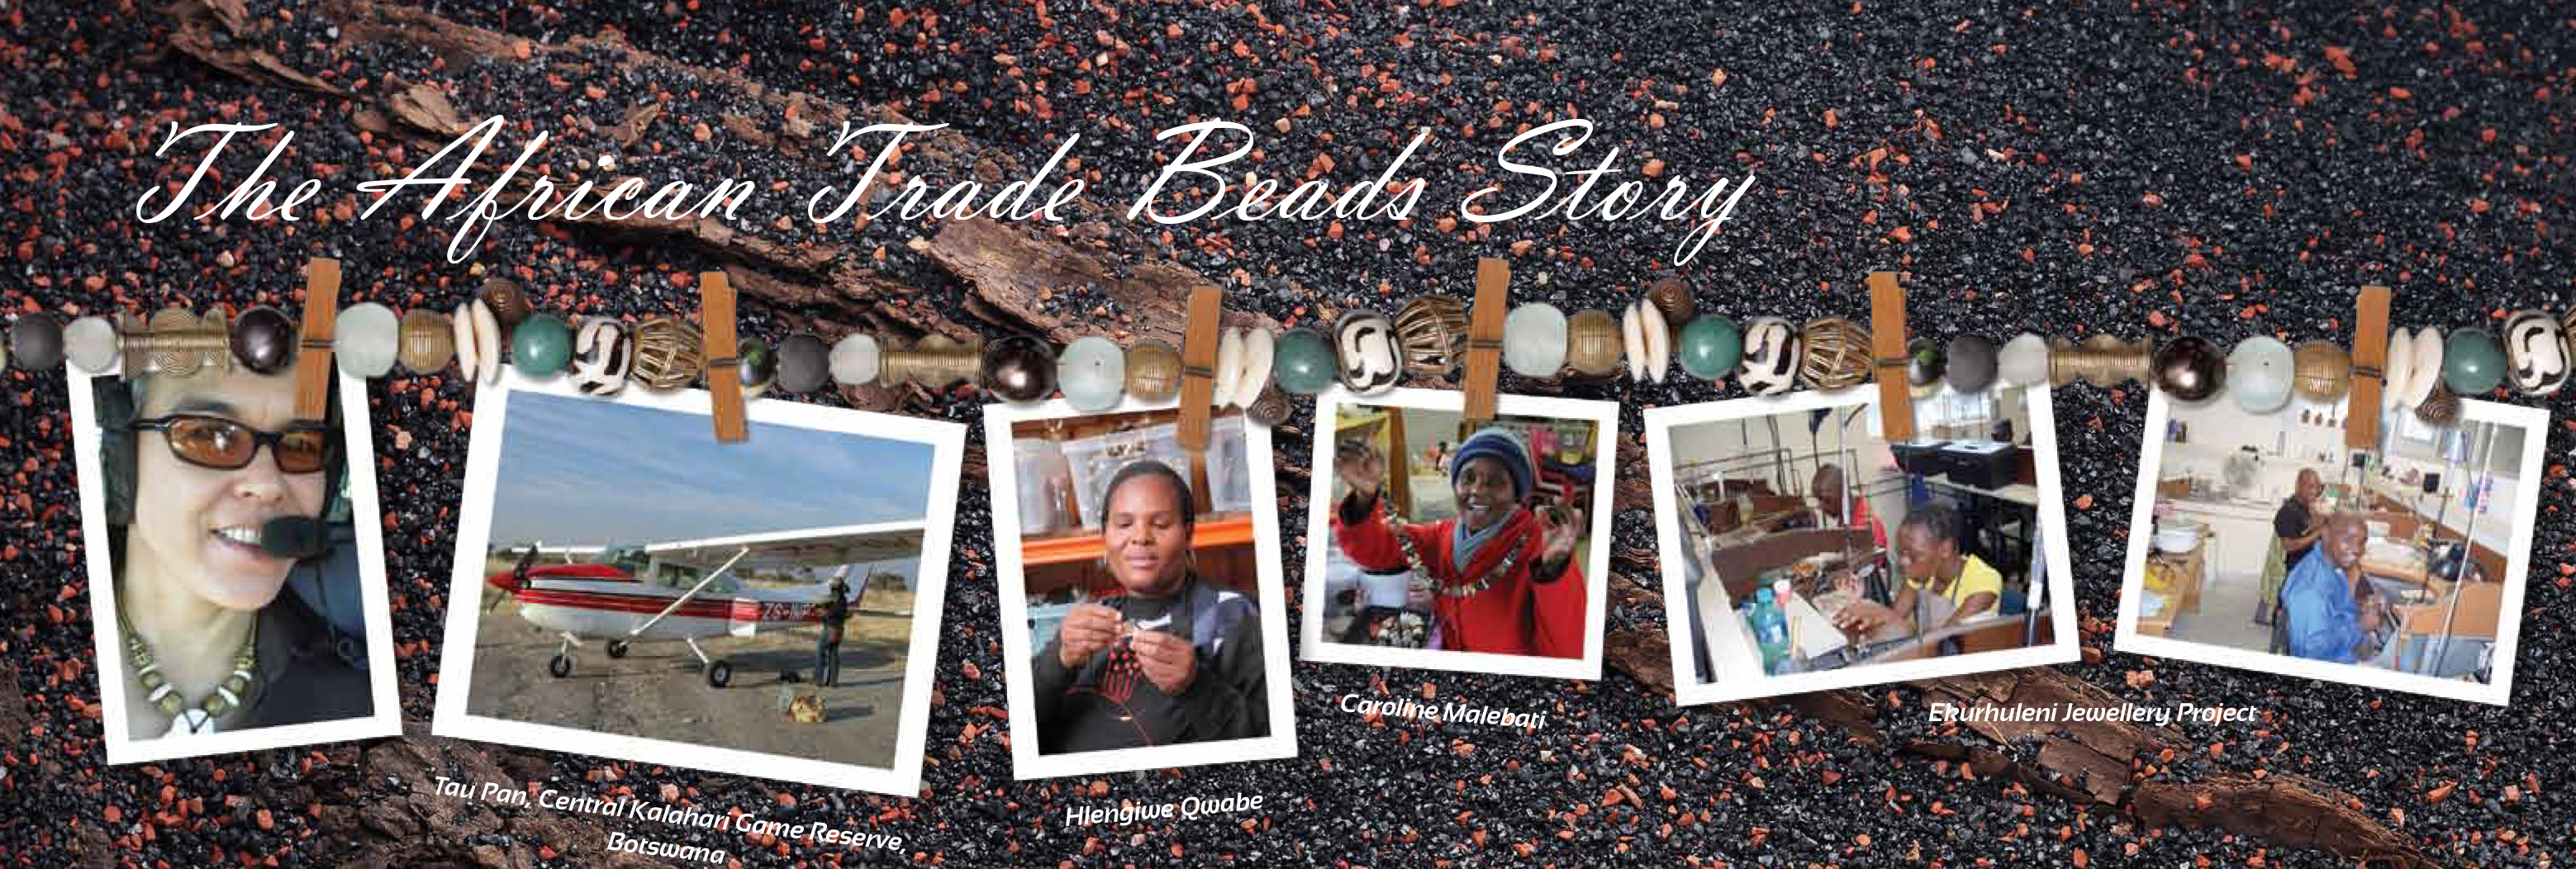 African-Bead-Trade-Beads-Story